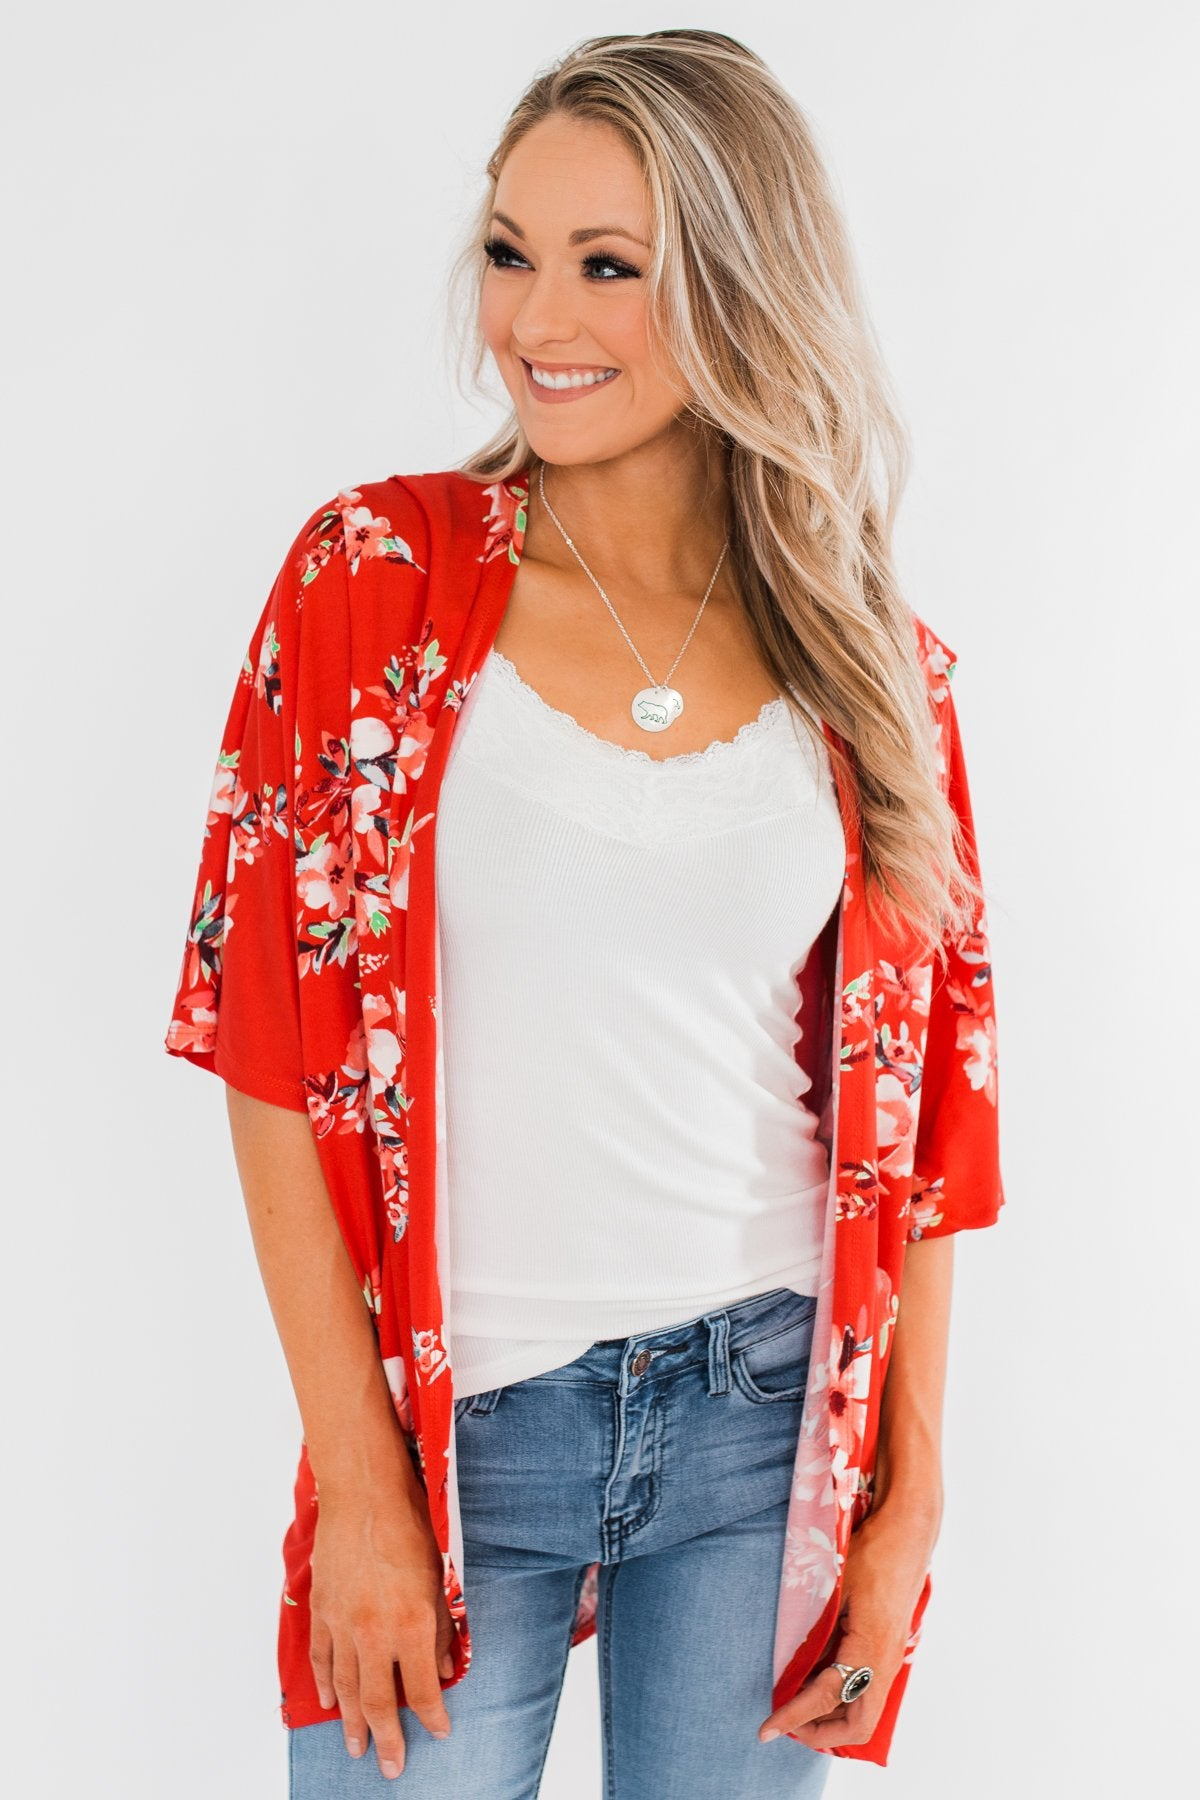 Never Been Better Floral Kimono- Scarlet Red